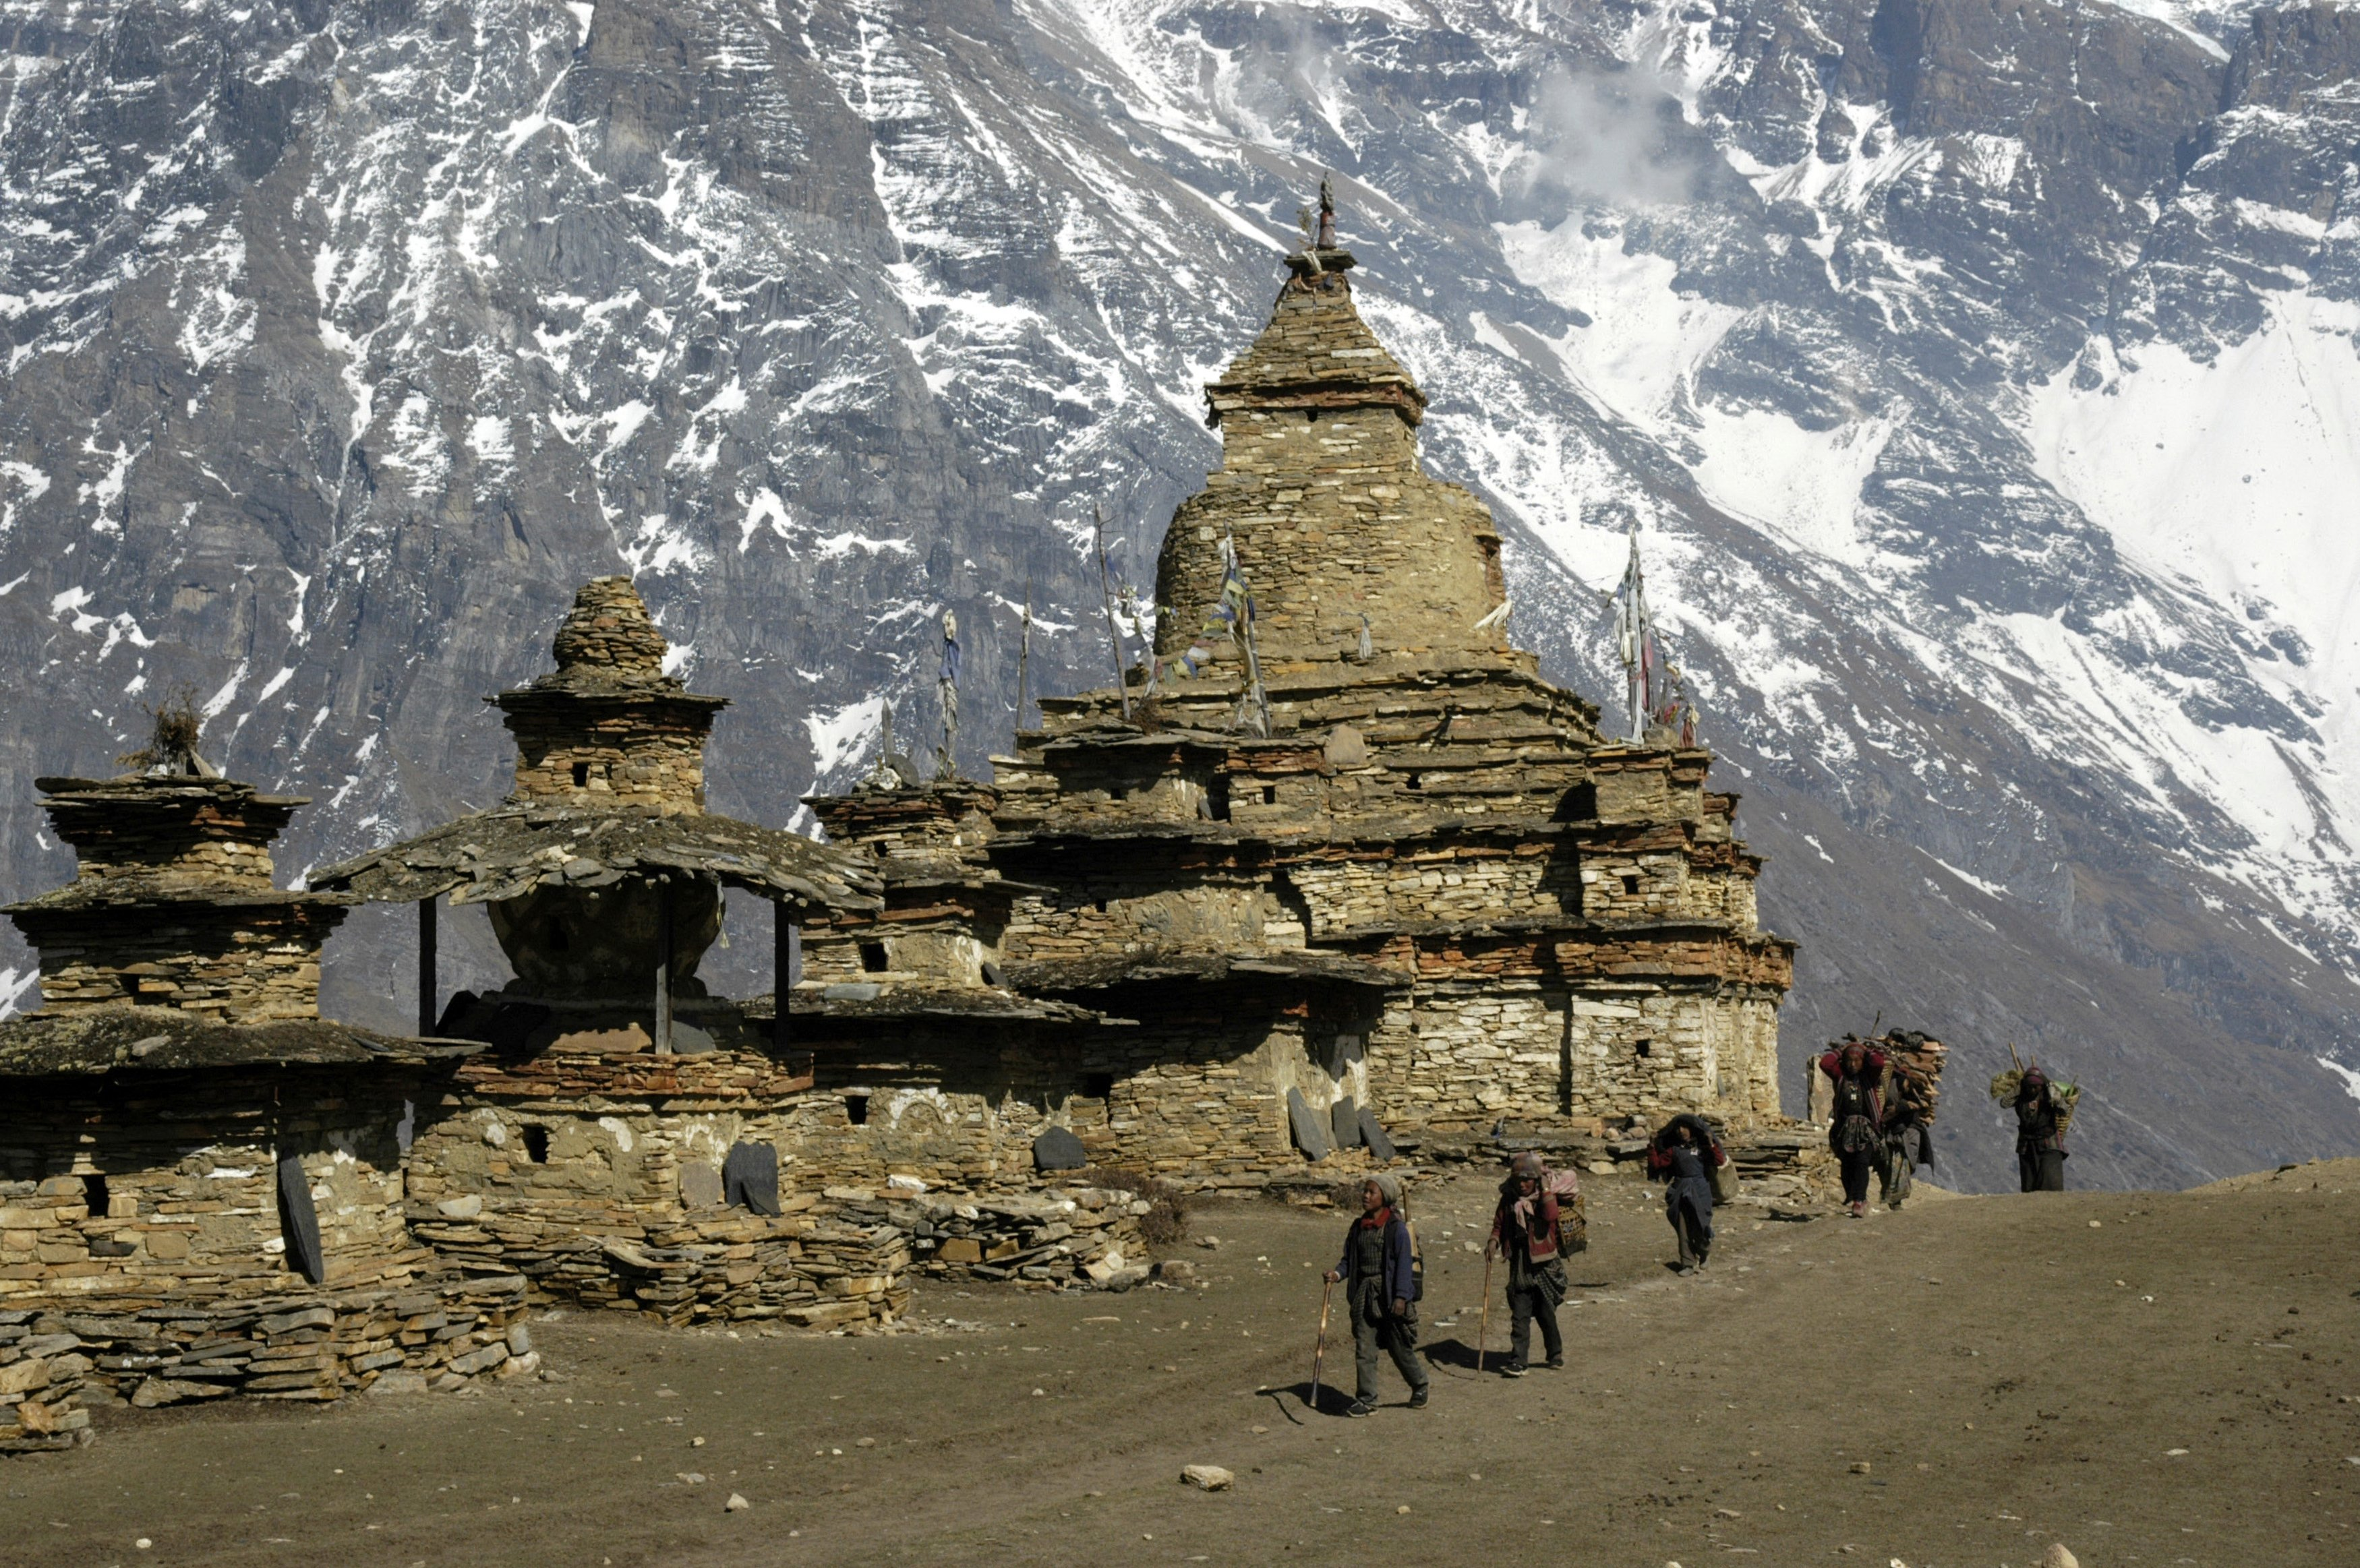 Buddhist temples near mountain Kang Guru in Nepal. Source: Global Look Press